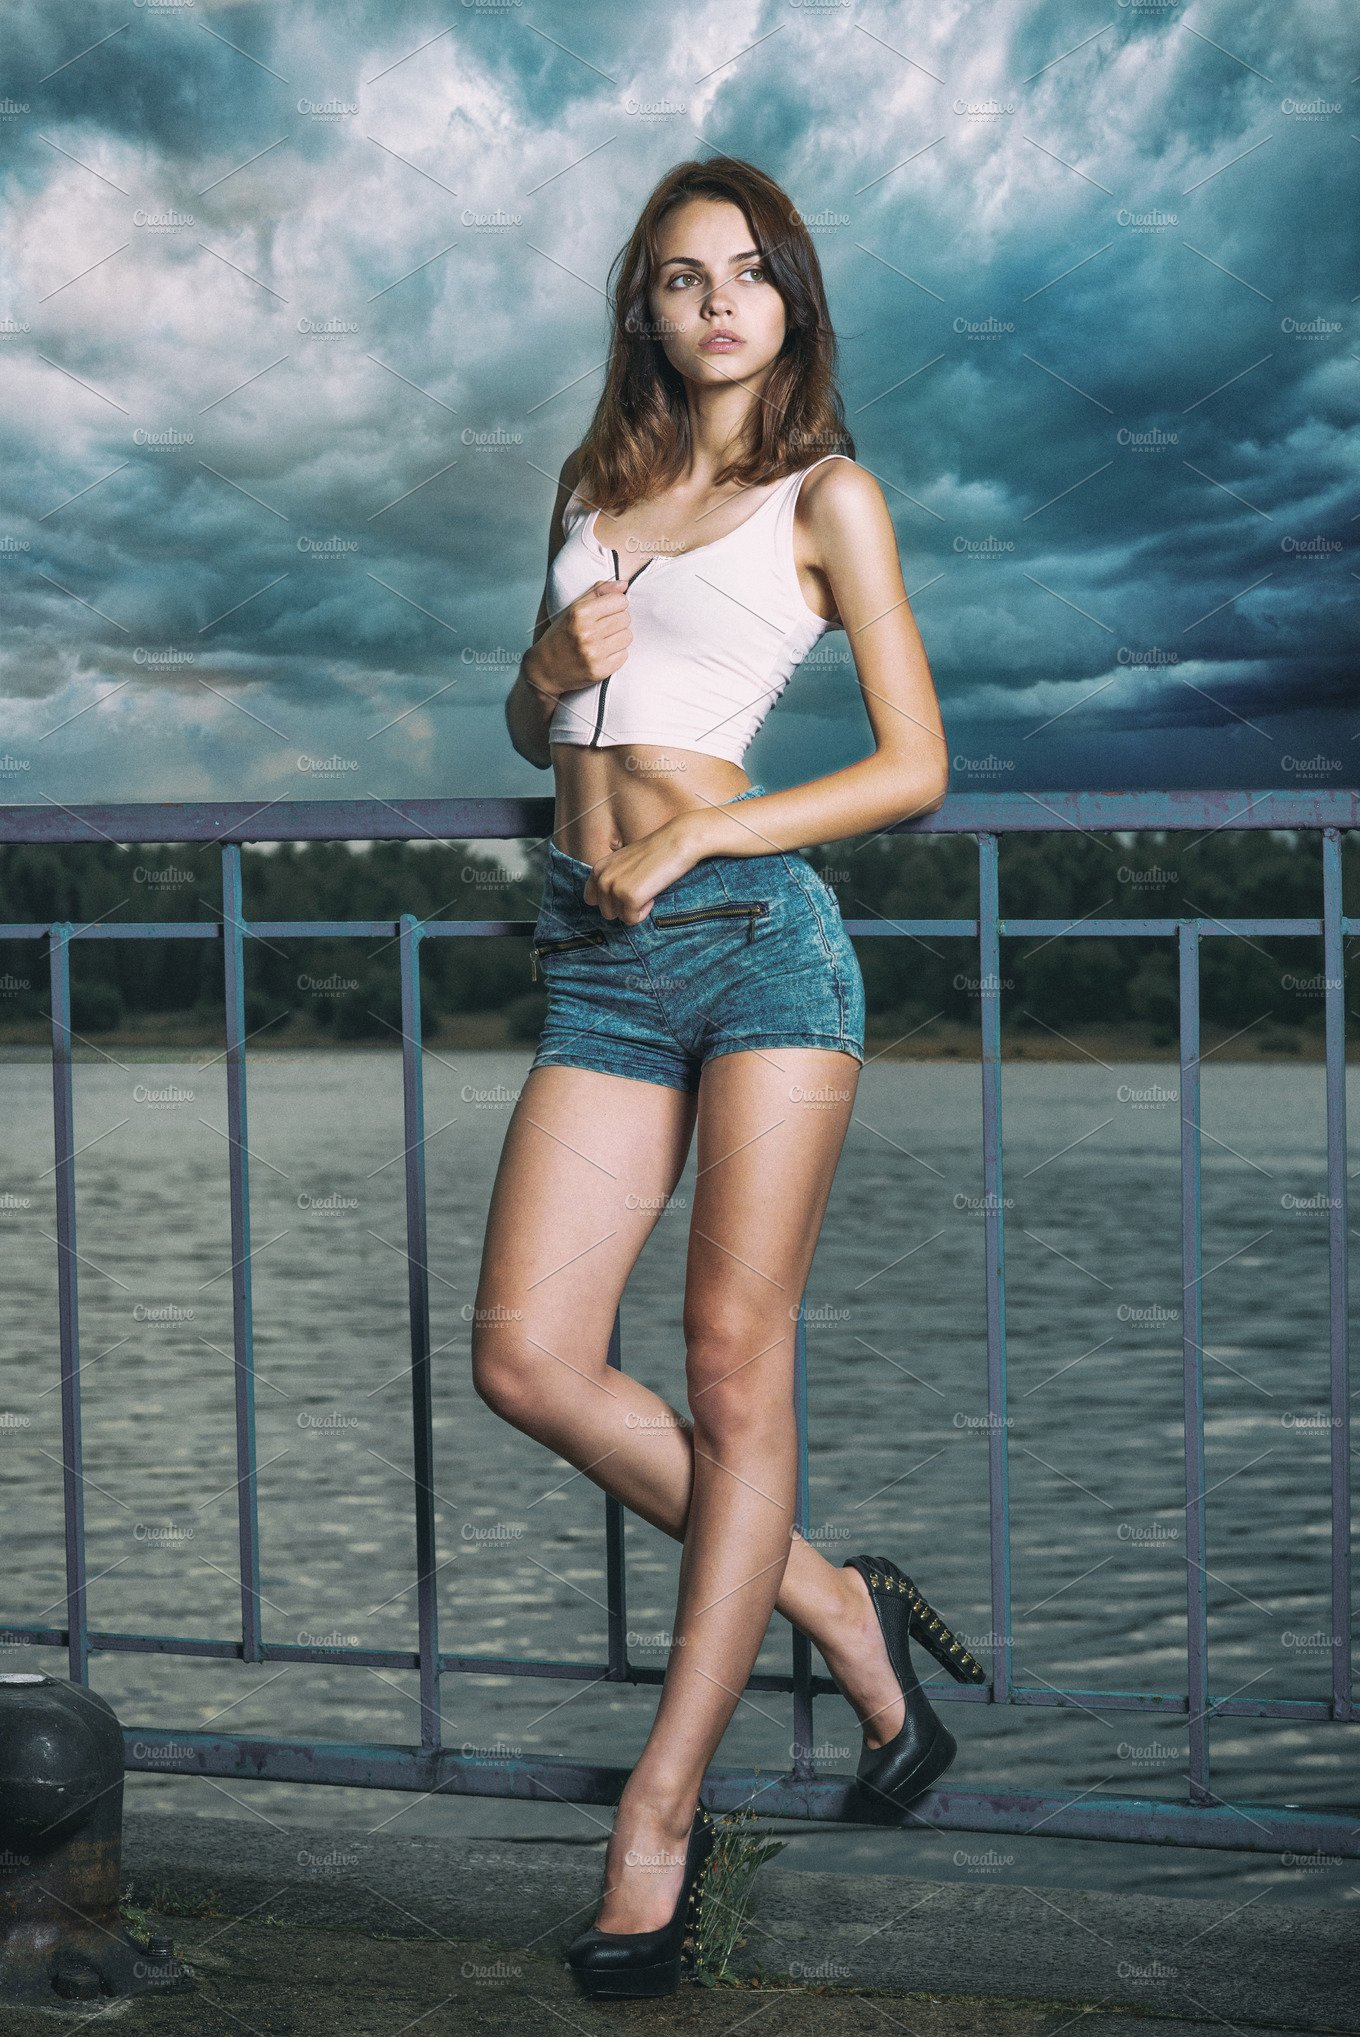 long legs girl posing near a river ~ People Photos ~ Creative Market eb4fd1c04